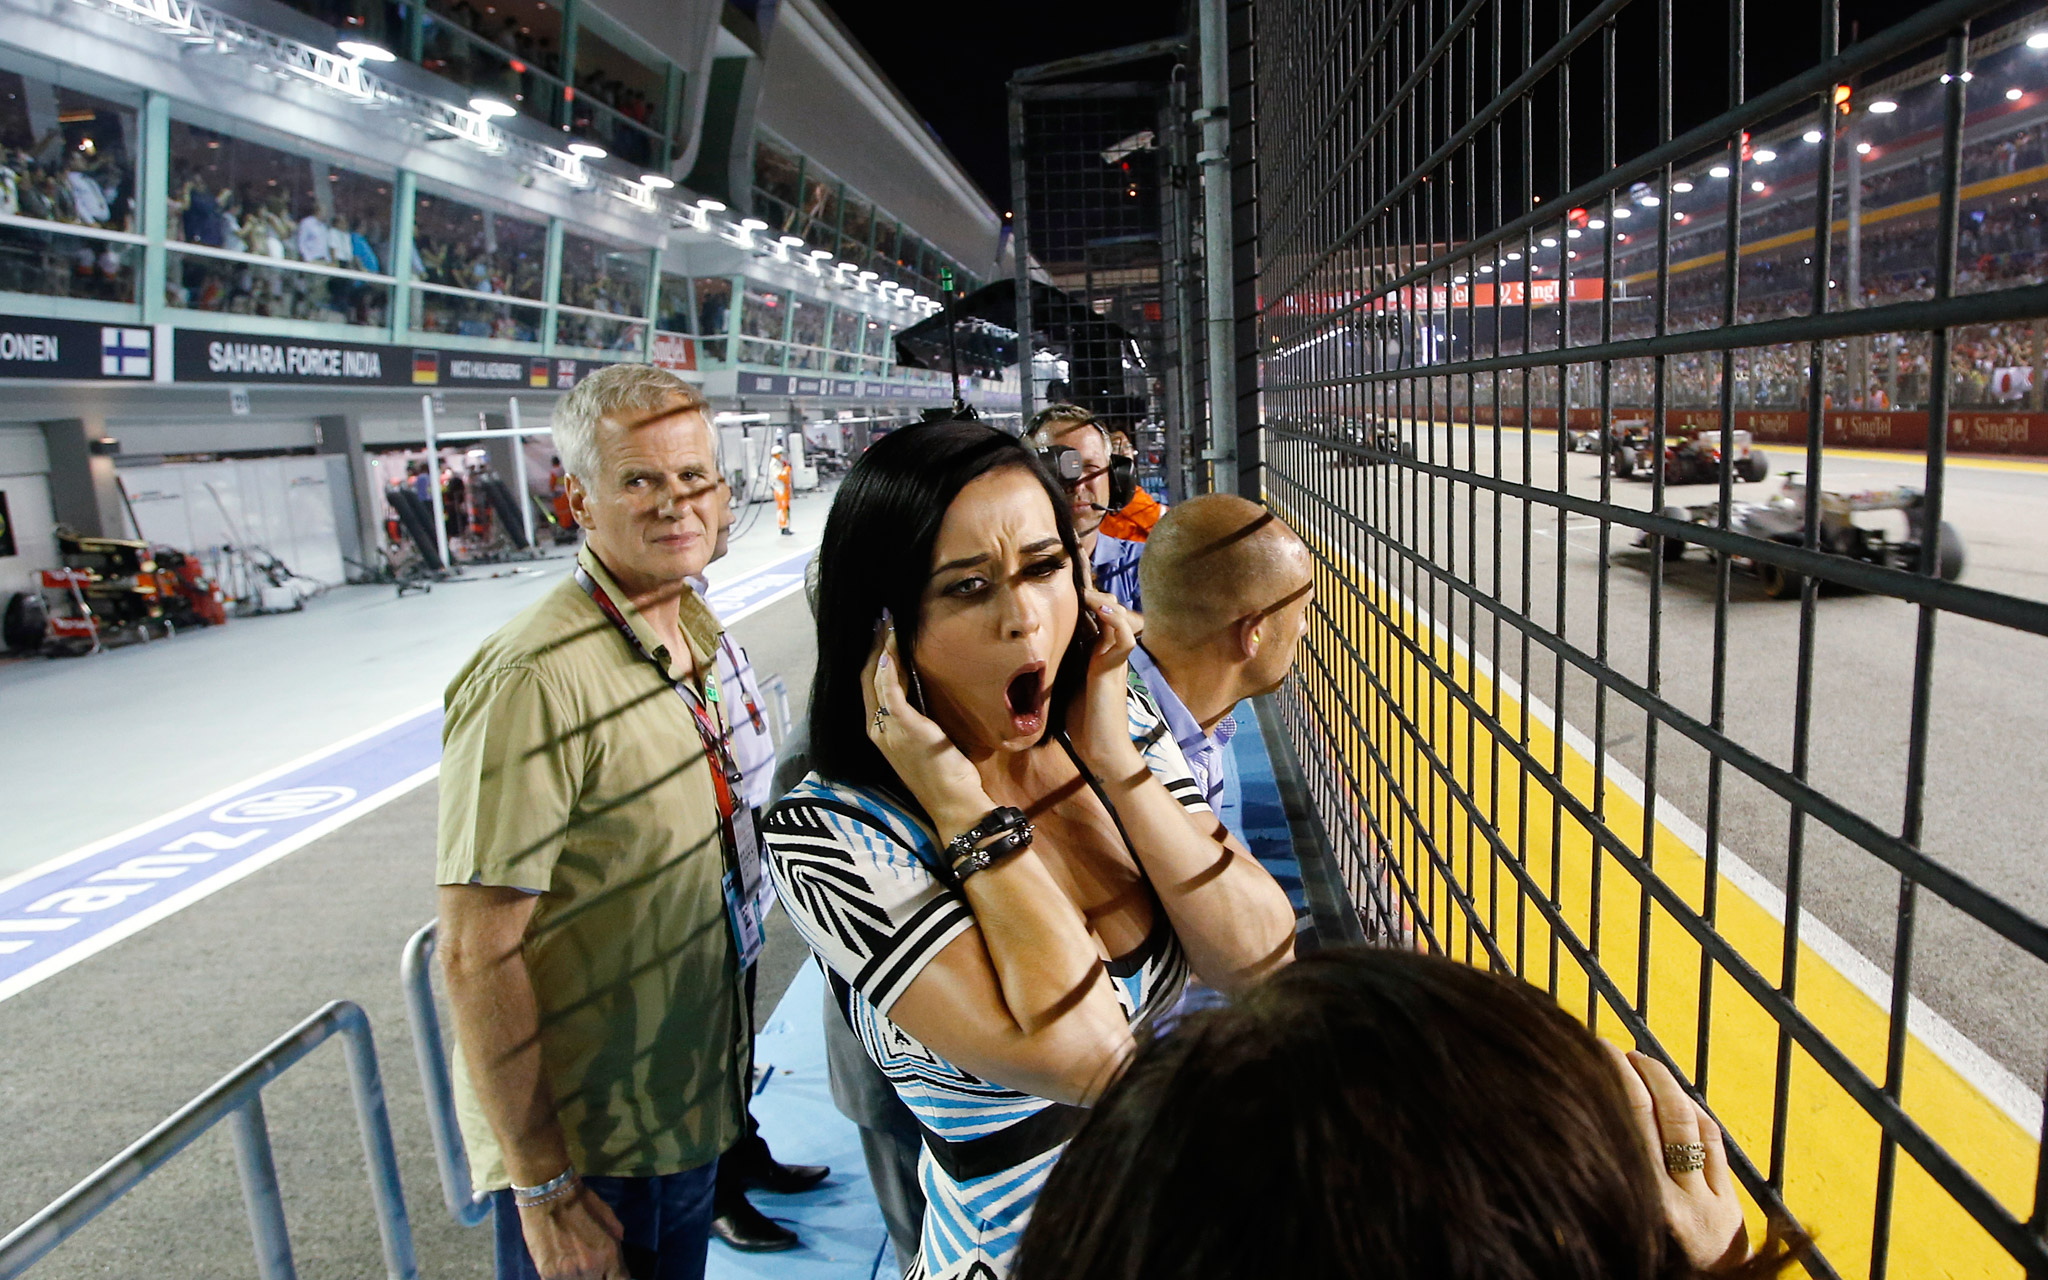 Katy Perry at Singapore F1 Grand Prix